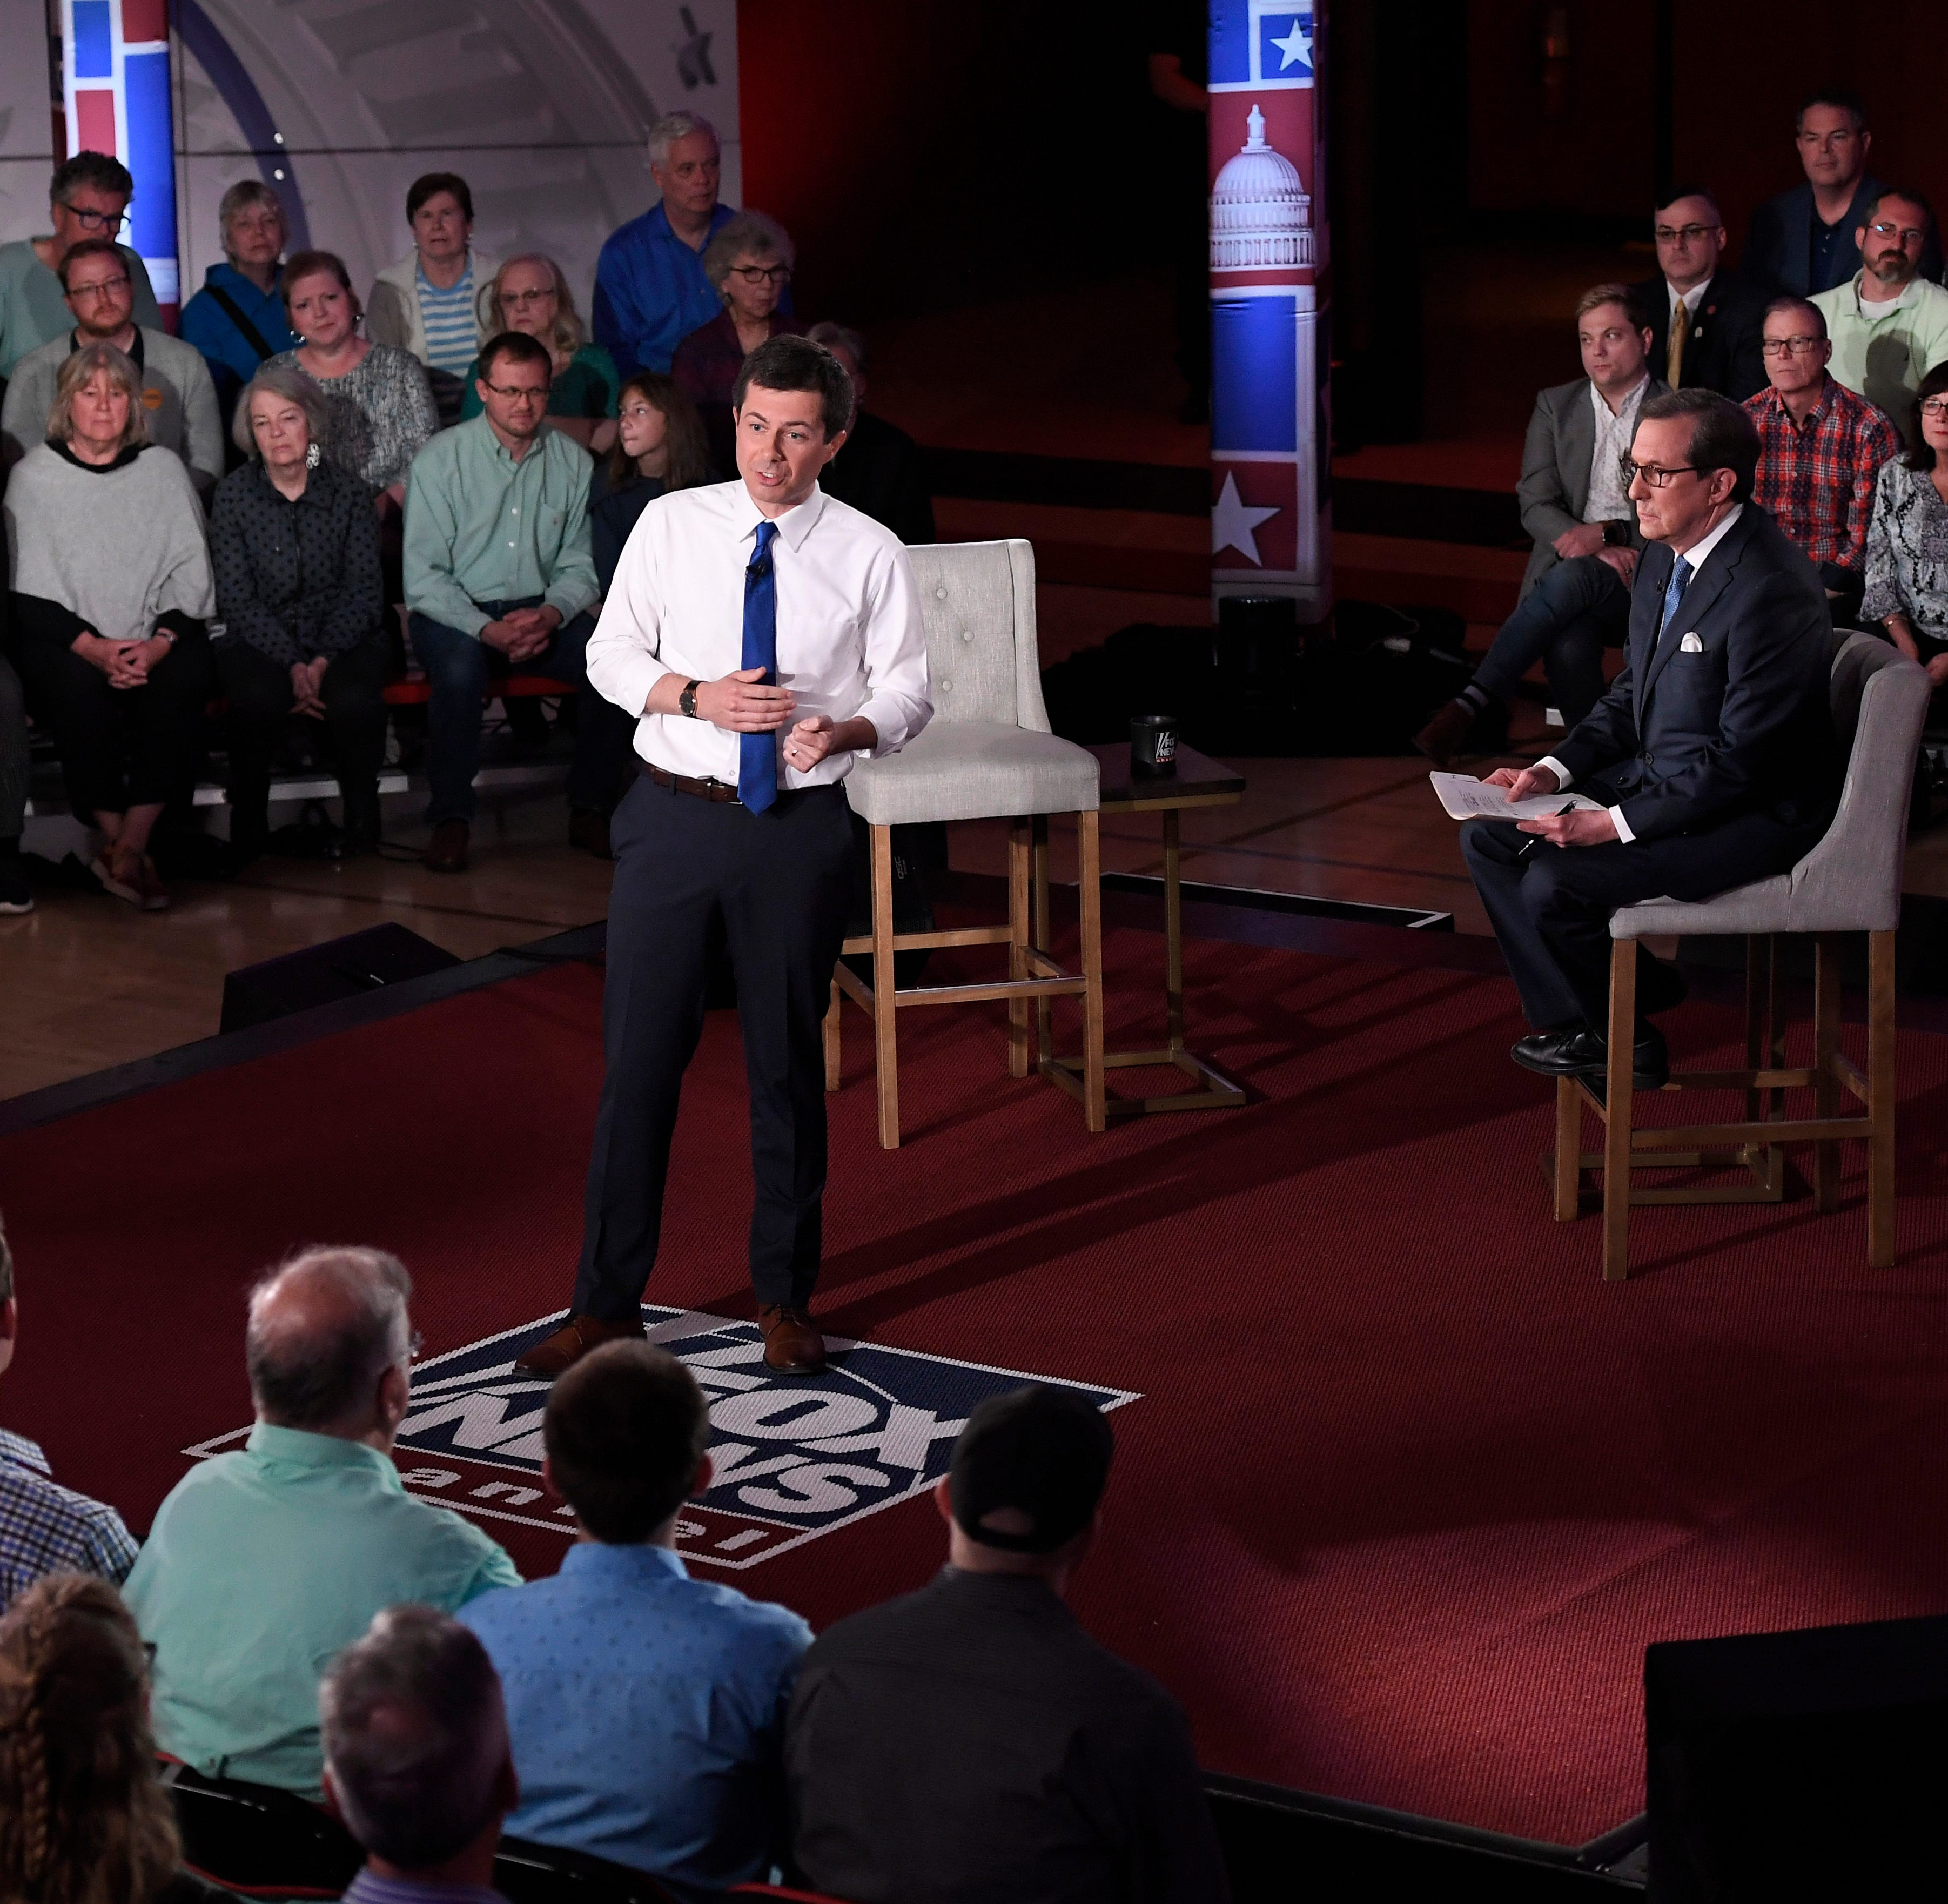 'I don't care': Buttigieg gets applause at Fox News town hall for dismissing Trump tweets